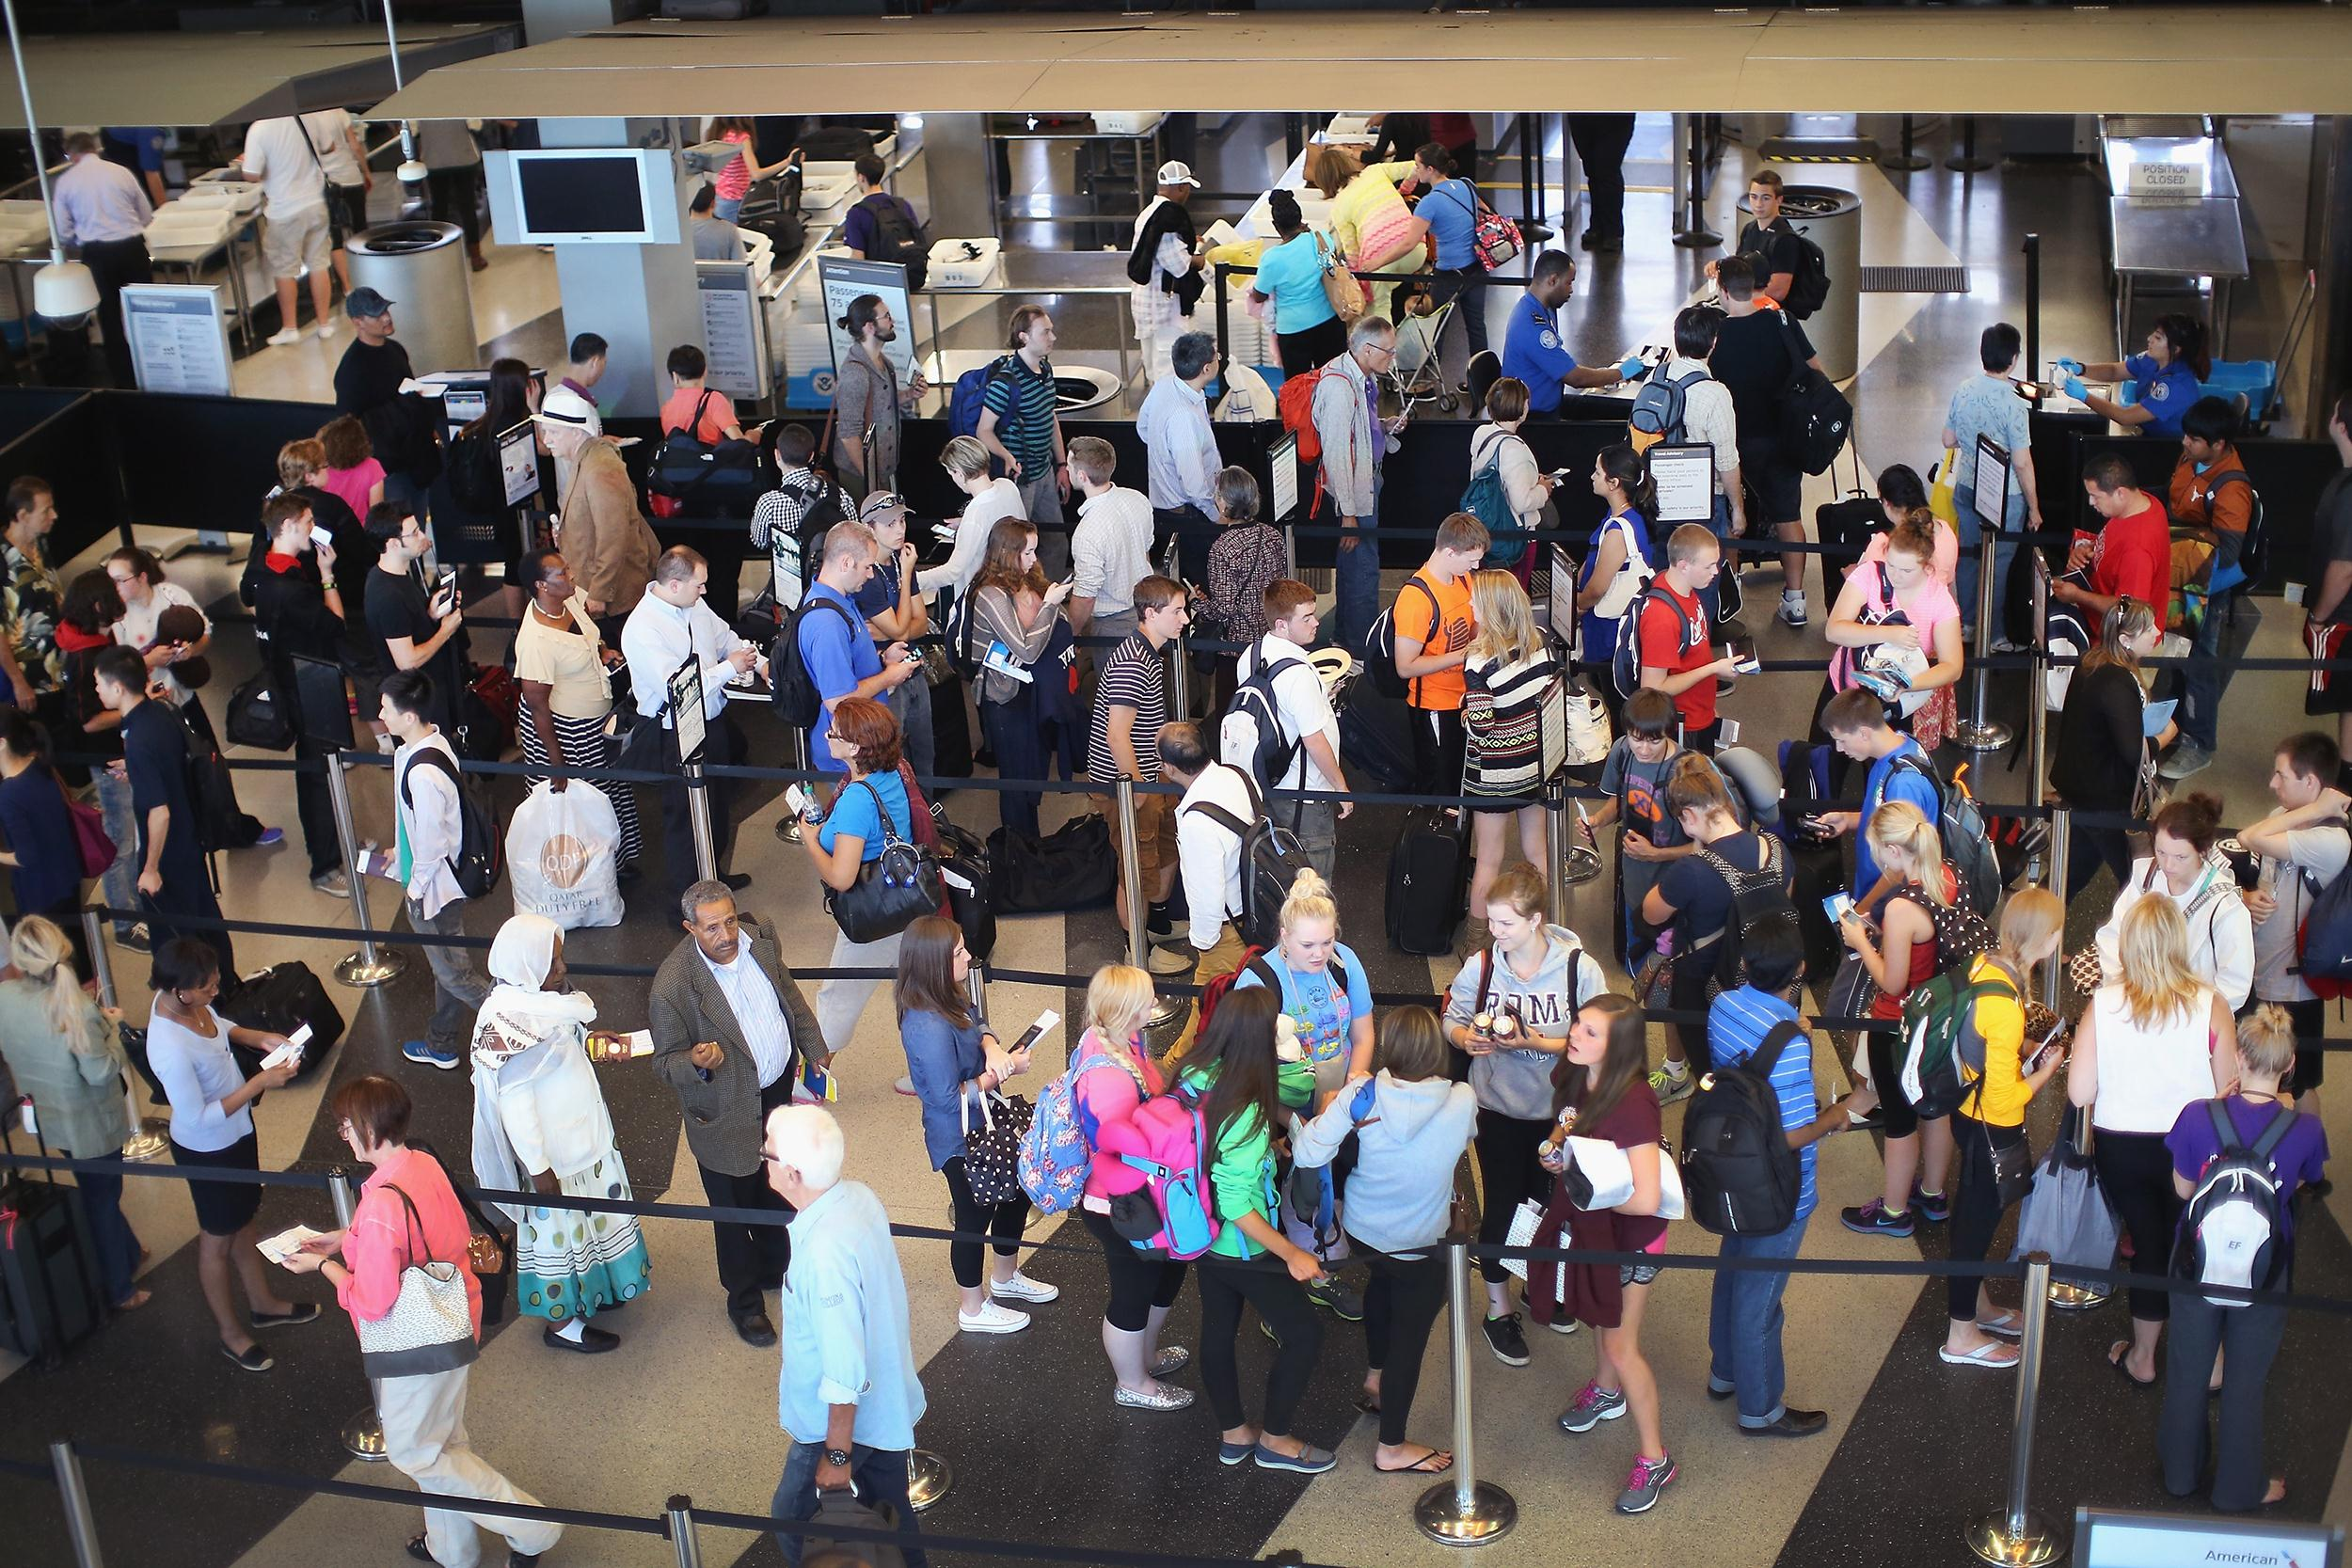 Image: Passengers wait in line at a security checkpoint at O'Hare International Airport on June 17, 2014 in Chicago, Ill.